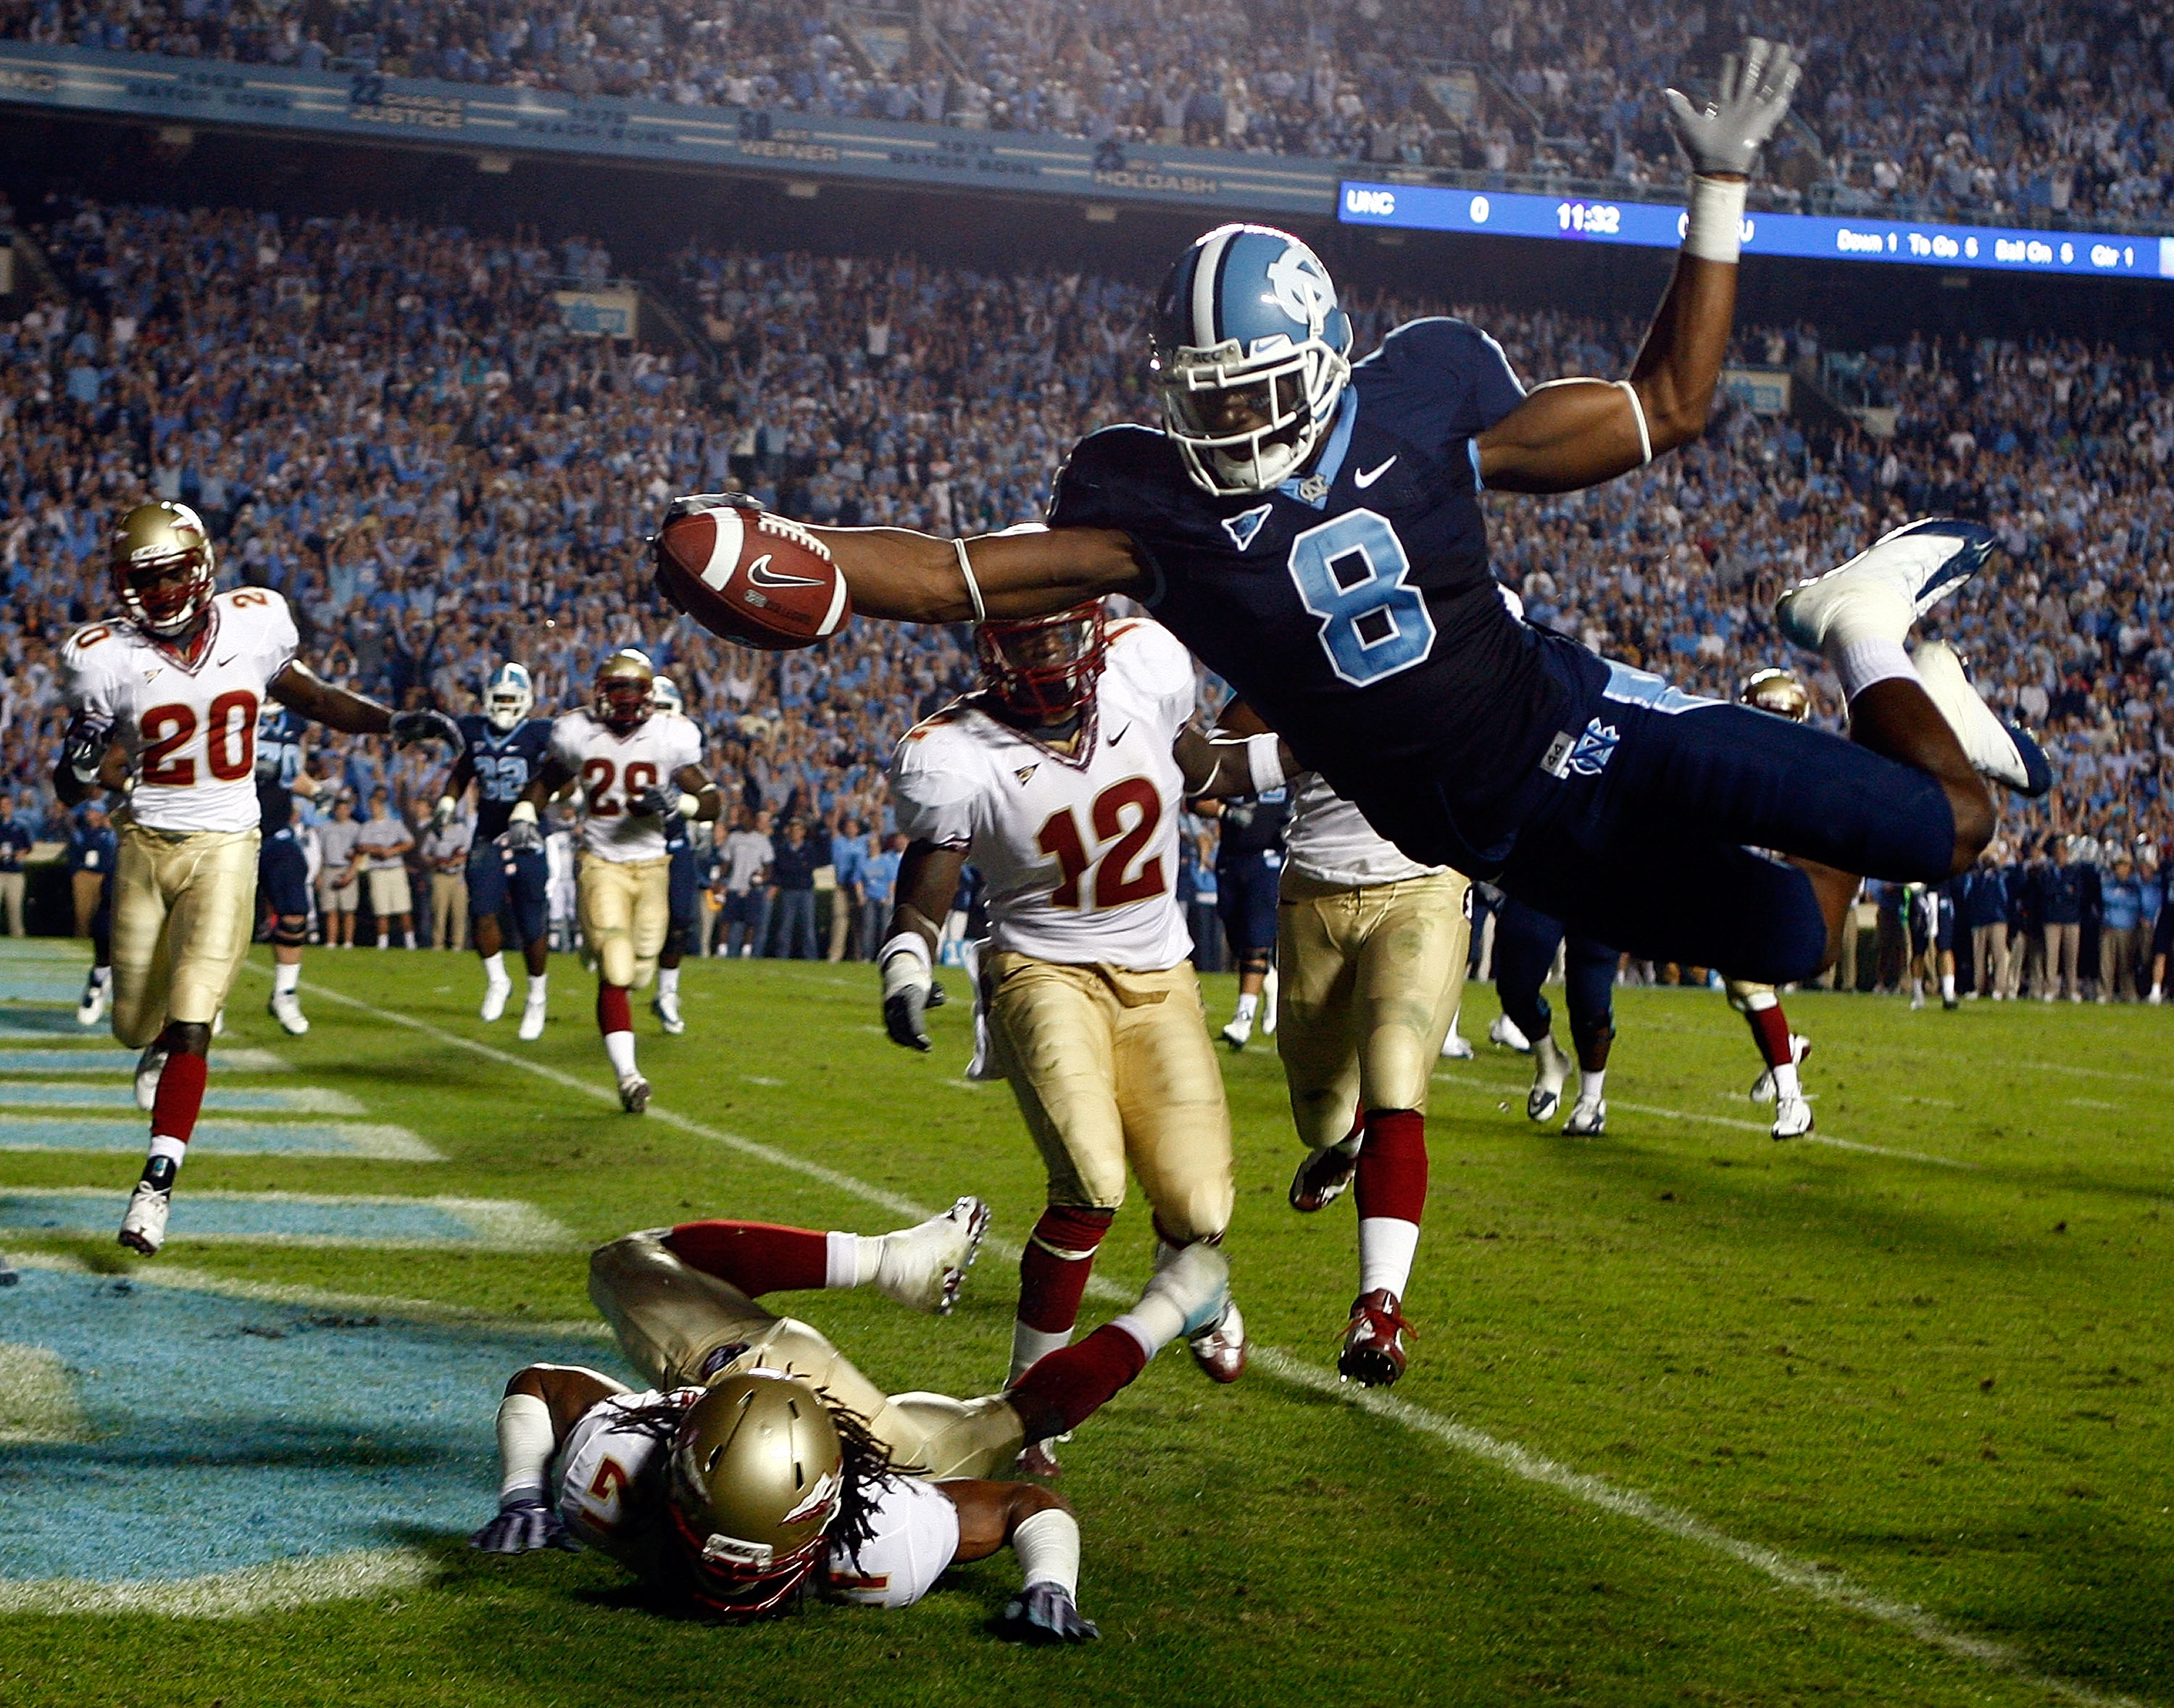 CHAPEL HILL, NC - OCTOBER 22:  Greg Little #8 of the North Carolina Tar Heels dives past Florida State Seminole defenders Patrick Robinson #21 and Nigel Carr #12 for a first quarter touchdown at Kenan Stadium on October 22, 2009 in Chapel Hill, North Caro